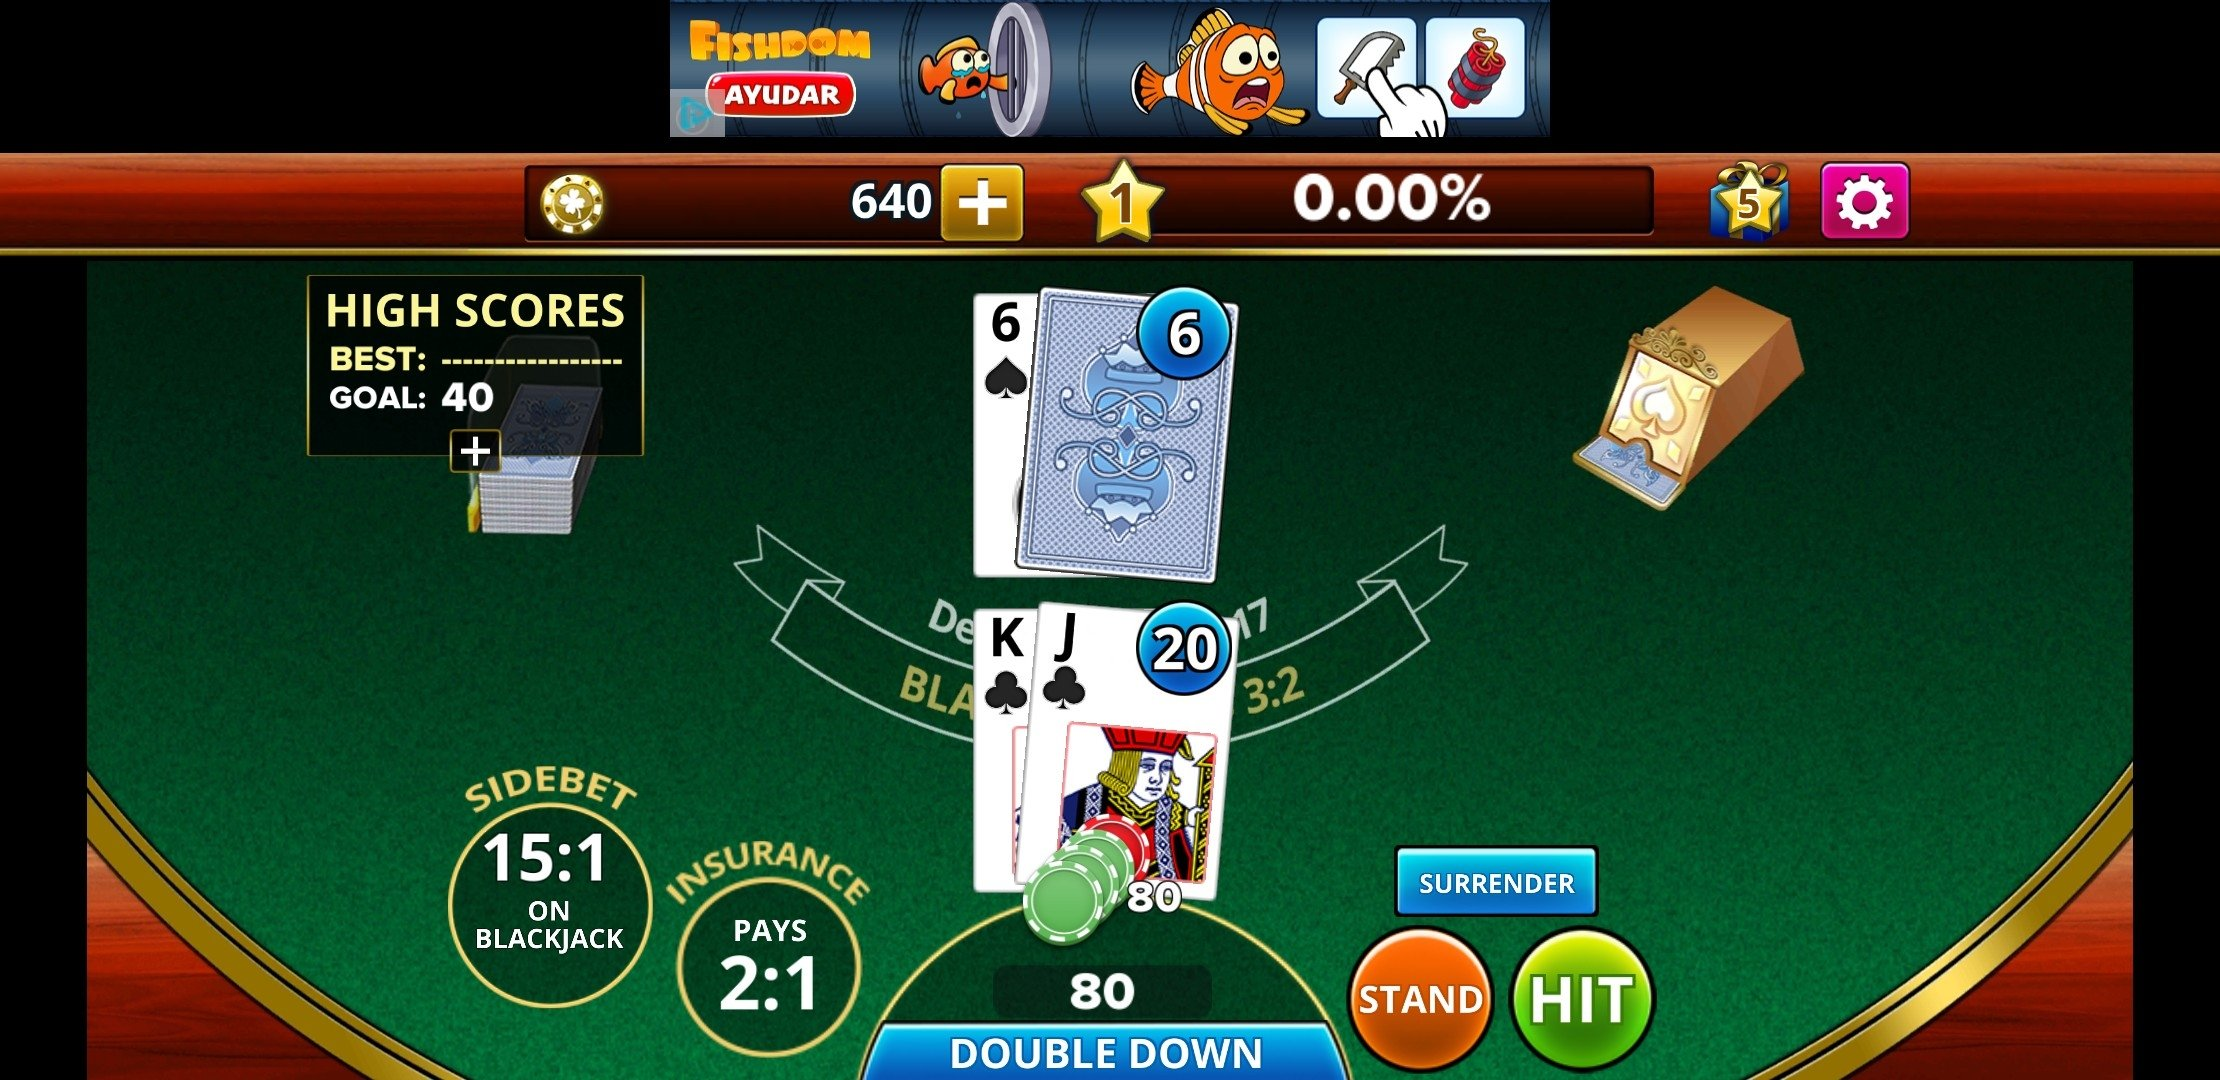 Masque blackjack download bonus poker en ligne sans depot